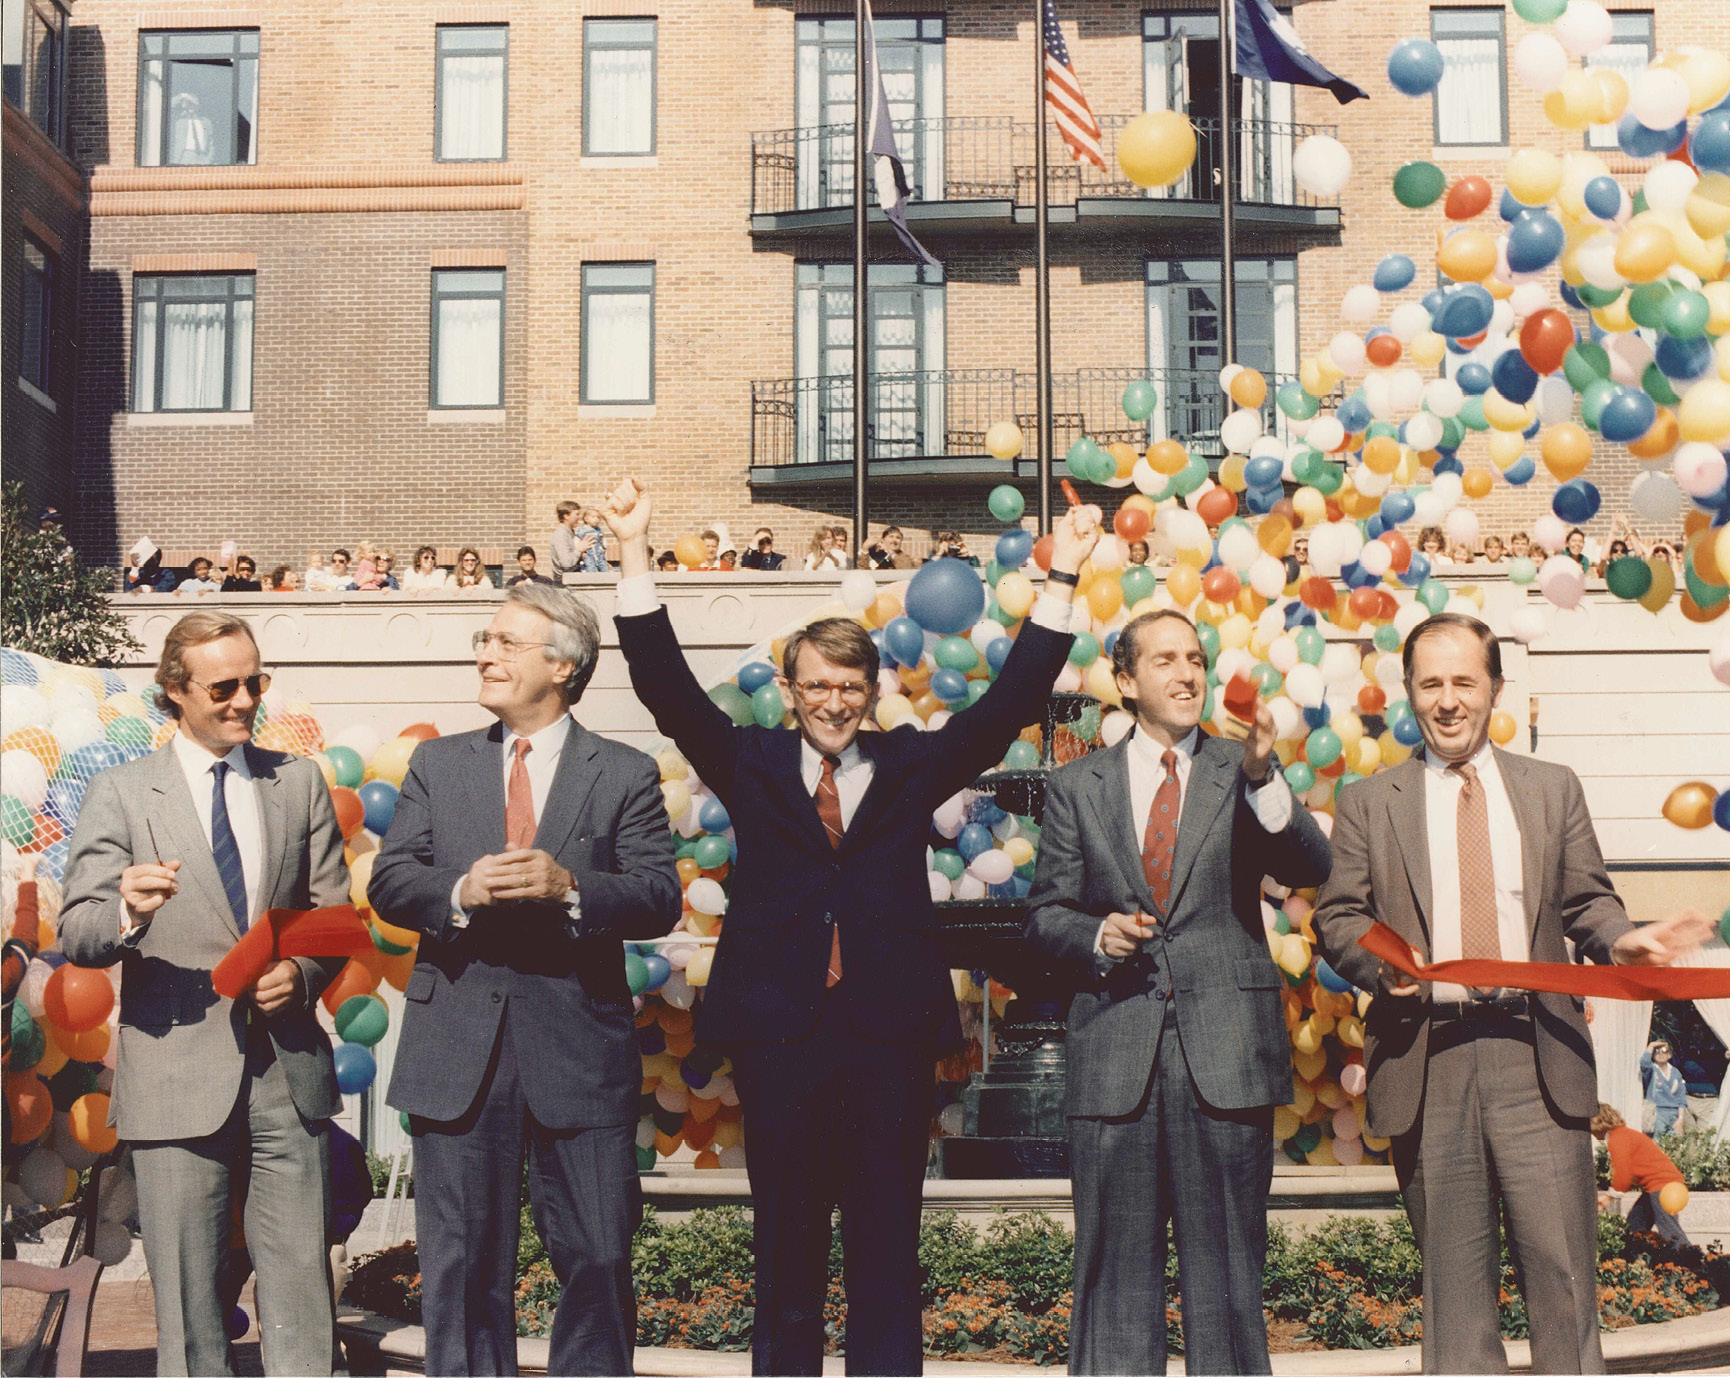 Then-Mayor Joseph Riley Jr. (left center) celebrates the opening of Charleston Place on September 2, 1986.